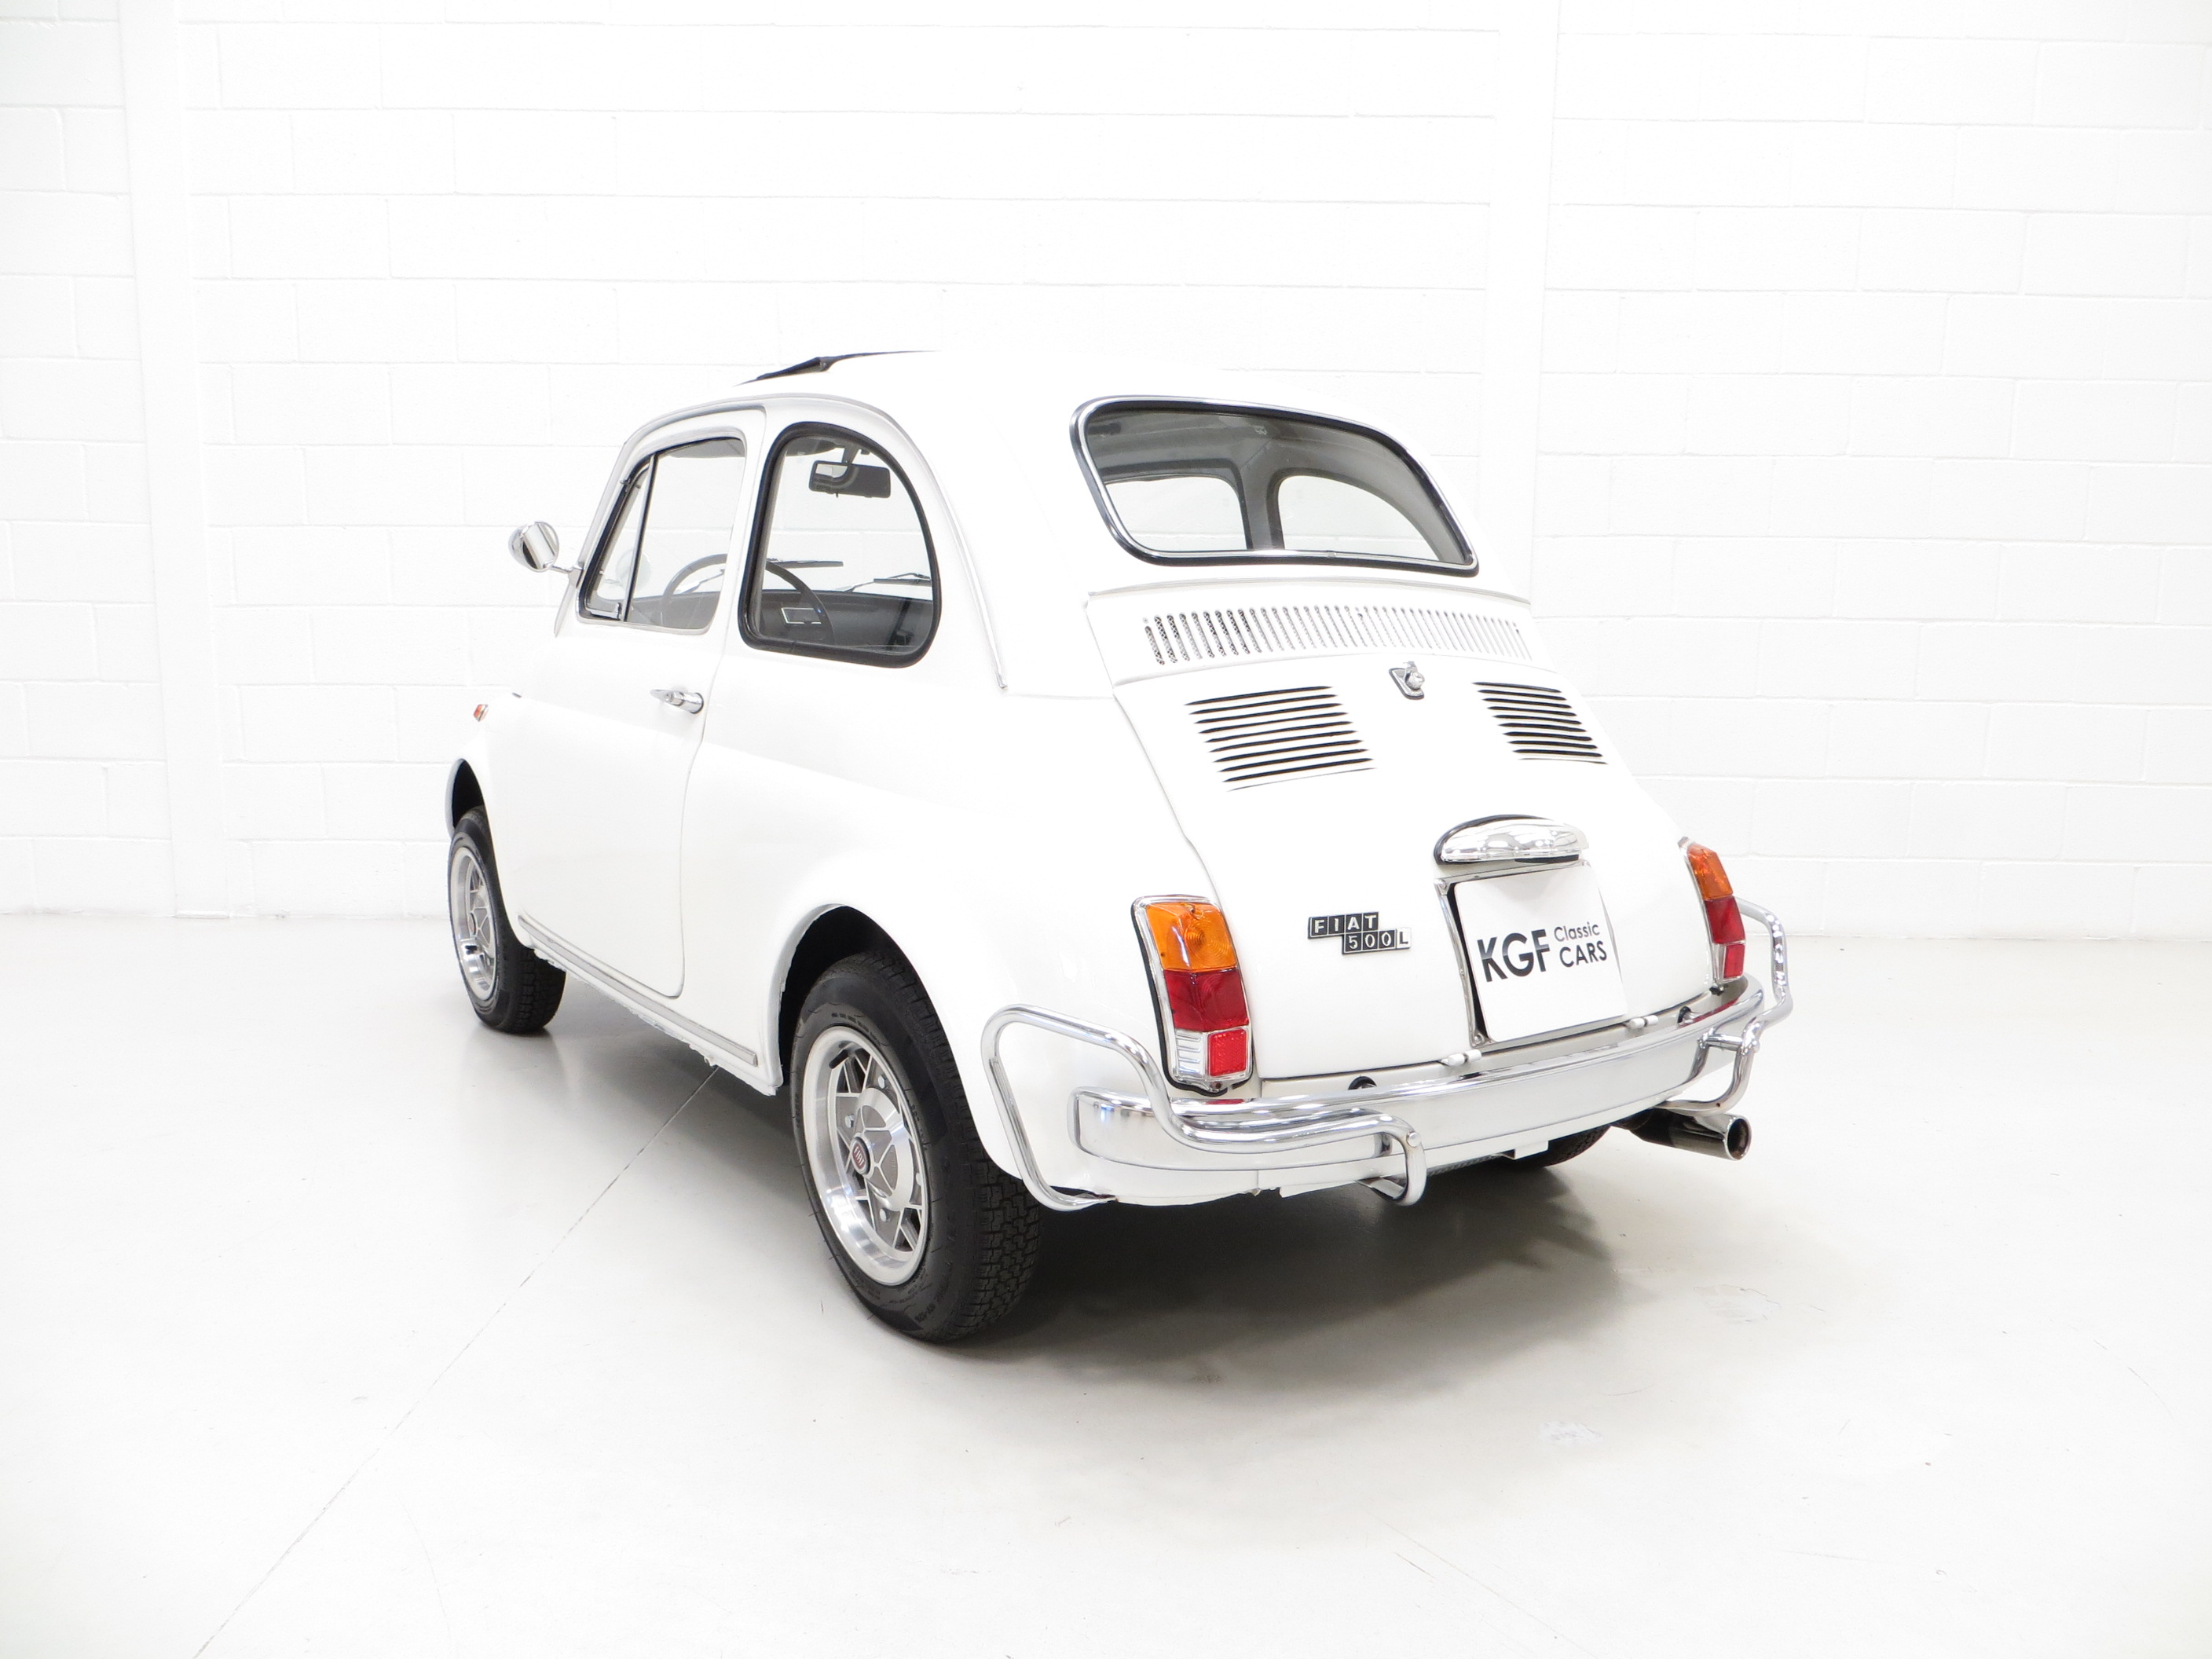 A Classic Adorable And Funky Fiat 500l Sold Pe1 Retro Rides 1970 500 For Sale By Kgf Cars On Flickr